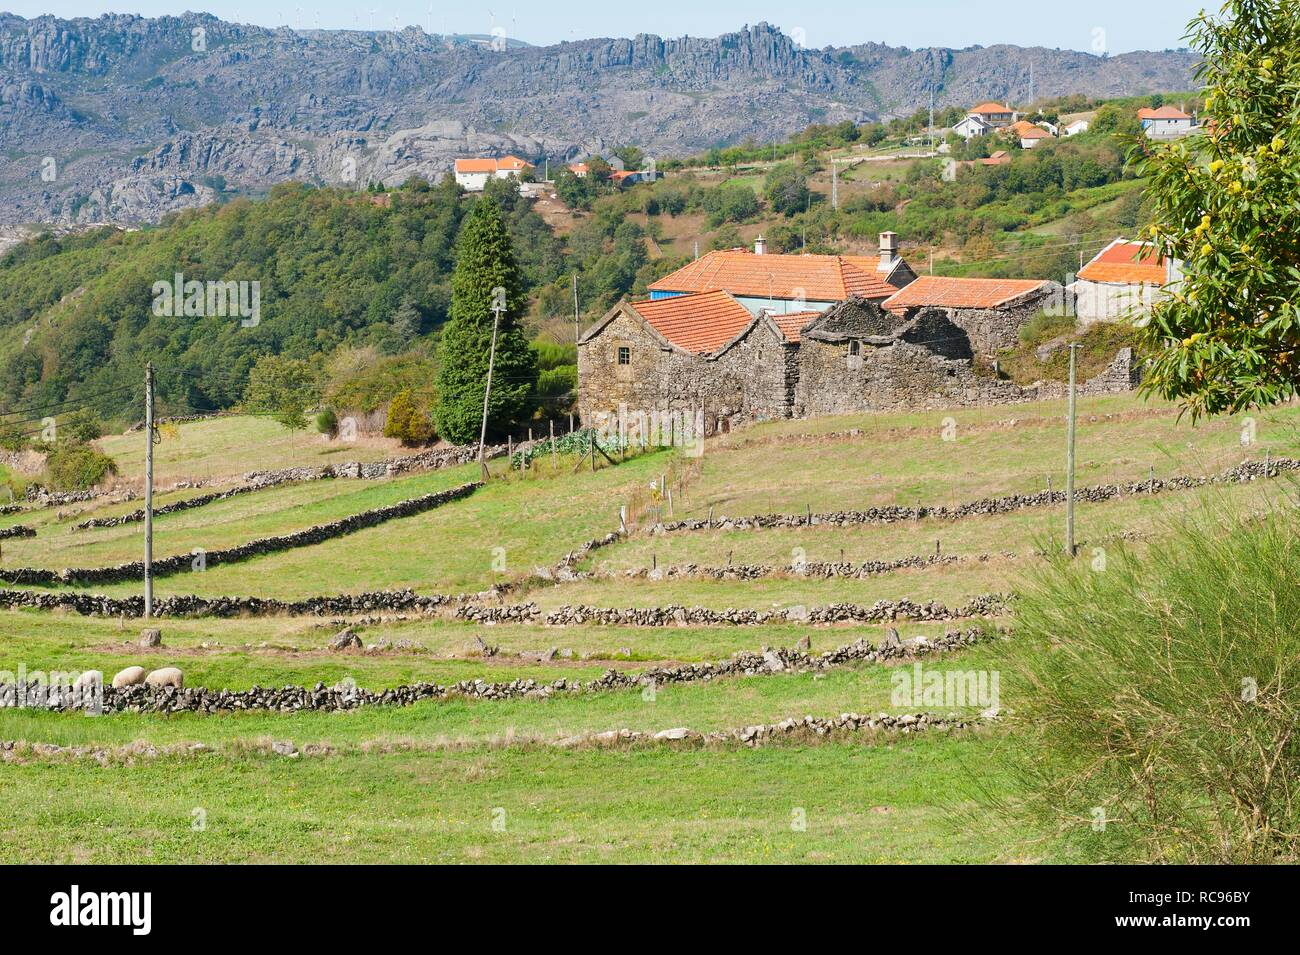 Landscape with stonewalls, Peneda Geres National Park, Minho province, Portugal, Europe - Stock Image